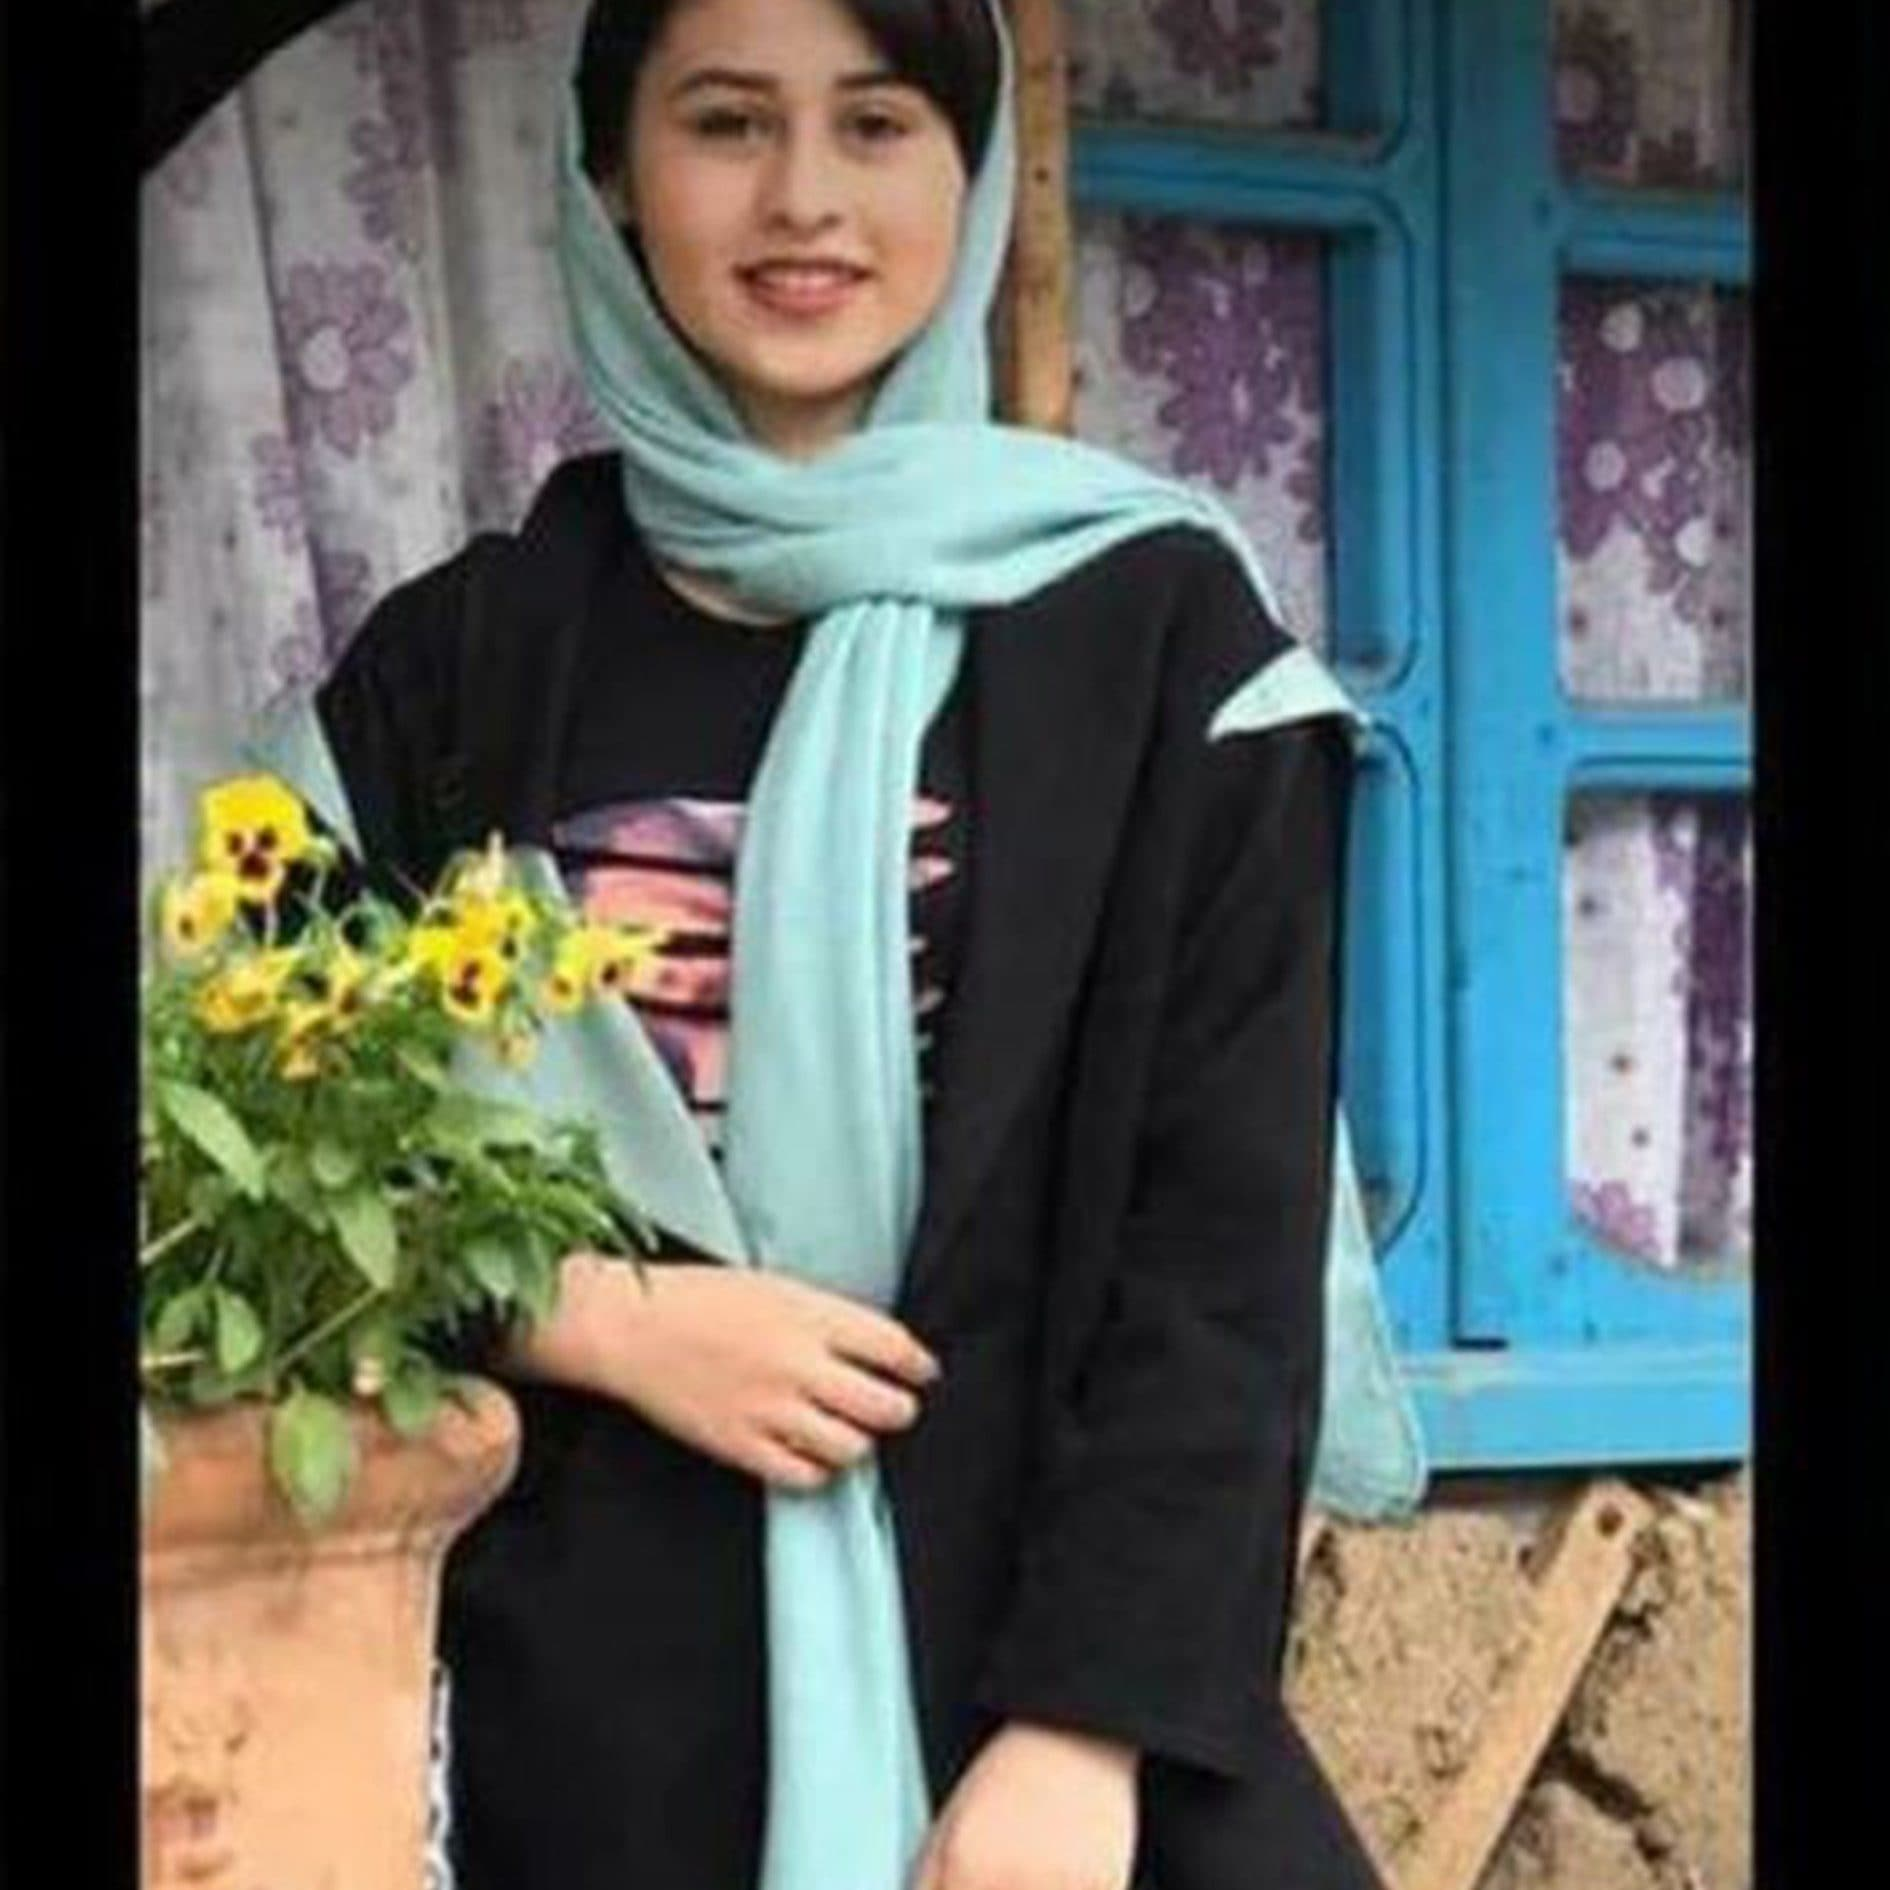 Outrage in Iran over gruesome honour killing of teenage girl